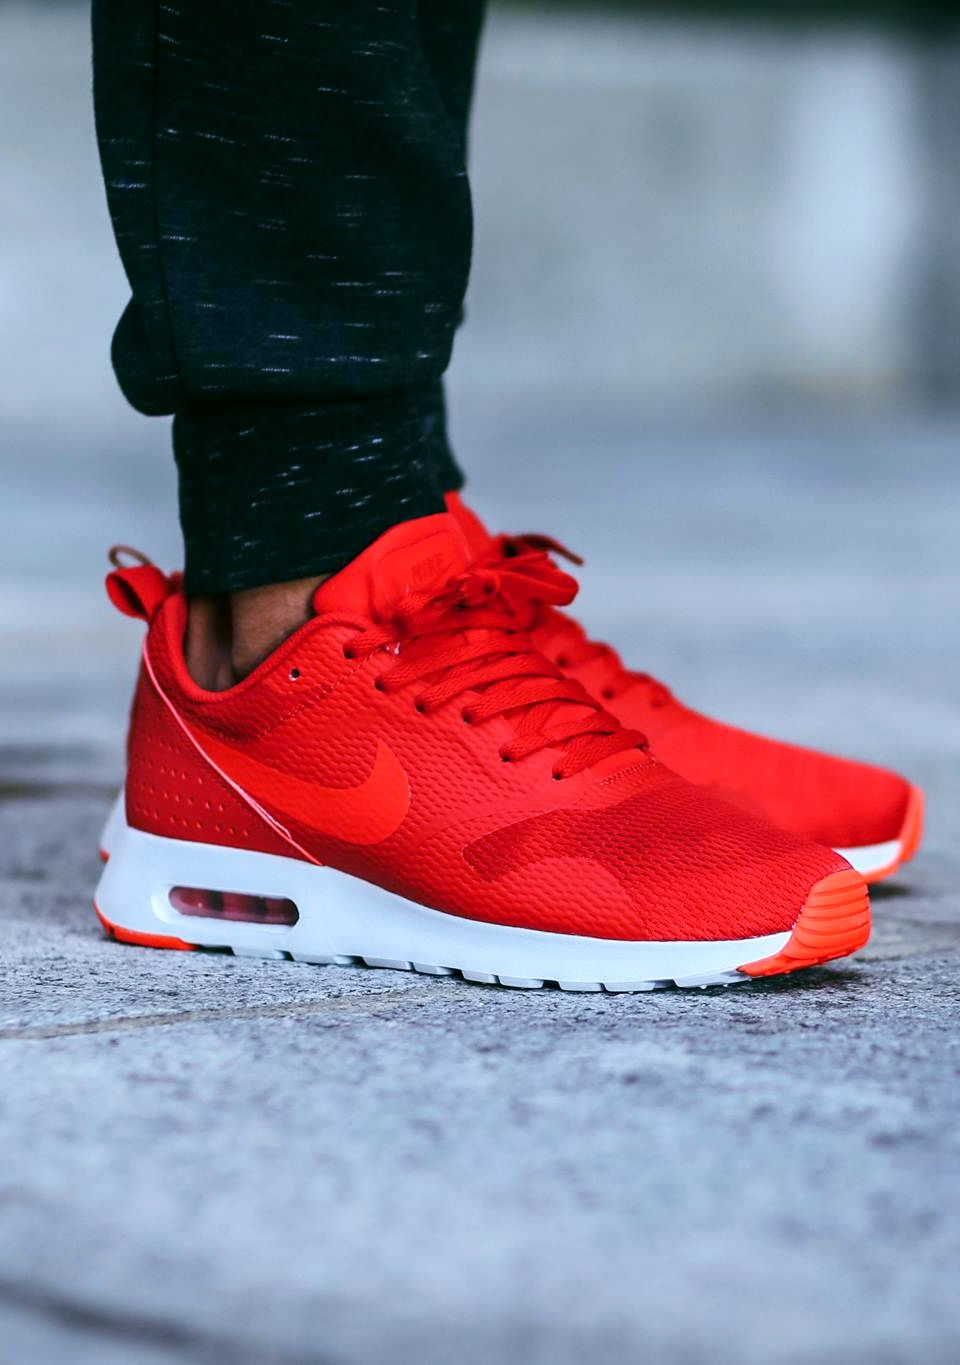 d8292cbde6f2 Nike Air Max Tavas  University Red  (via Kicks-daily.com)